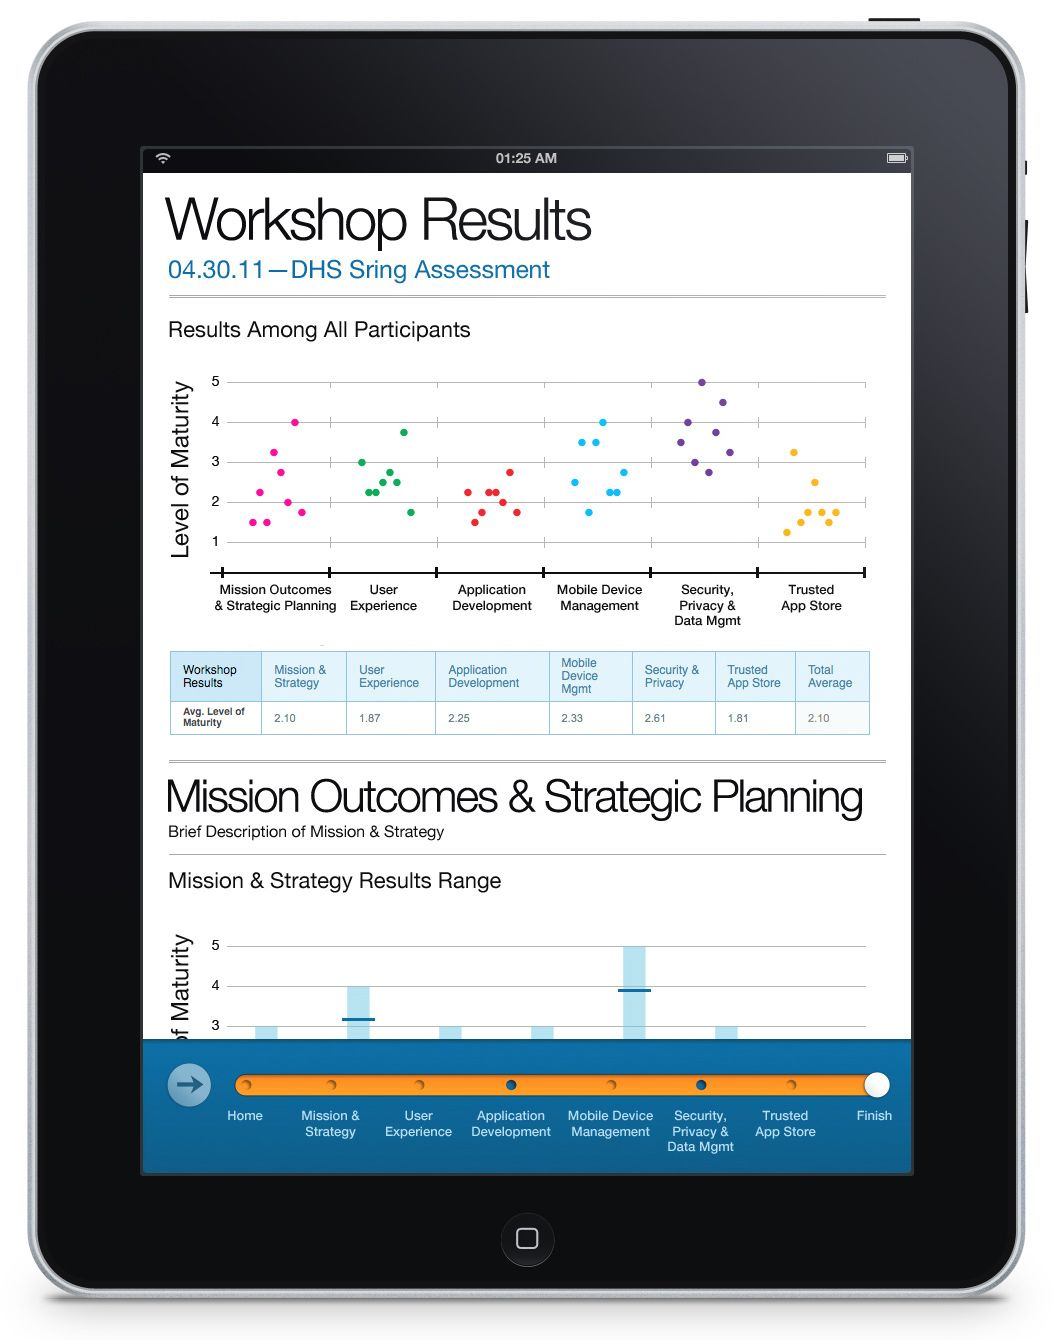 Data Visualization in a Mobile App. Our successful attempt in bringing data visualization to a mobile application. Our client didn't want the standard boring reporting graphs and needed something cooler. The end result is what you see. Boost Labs - Data Visualization and Infographics Design Firm - www.boostlabs.com